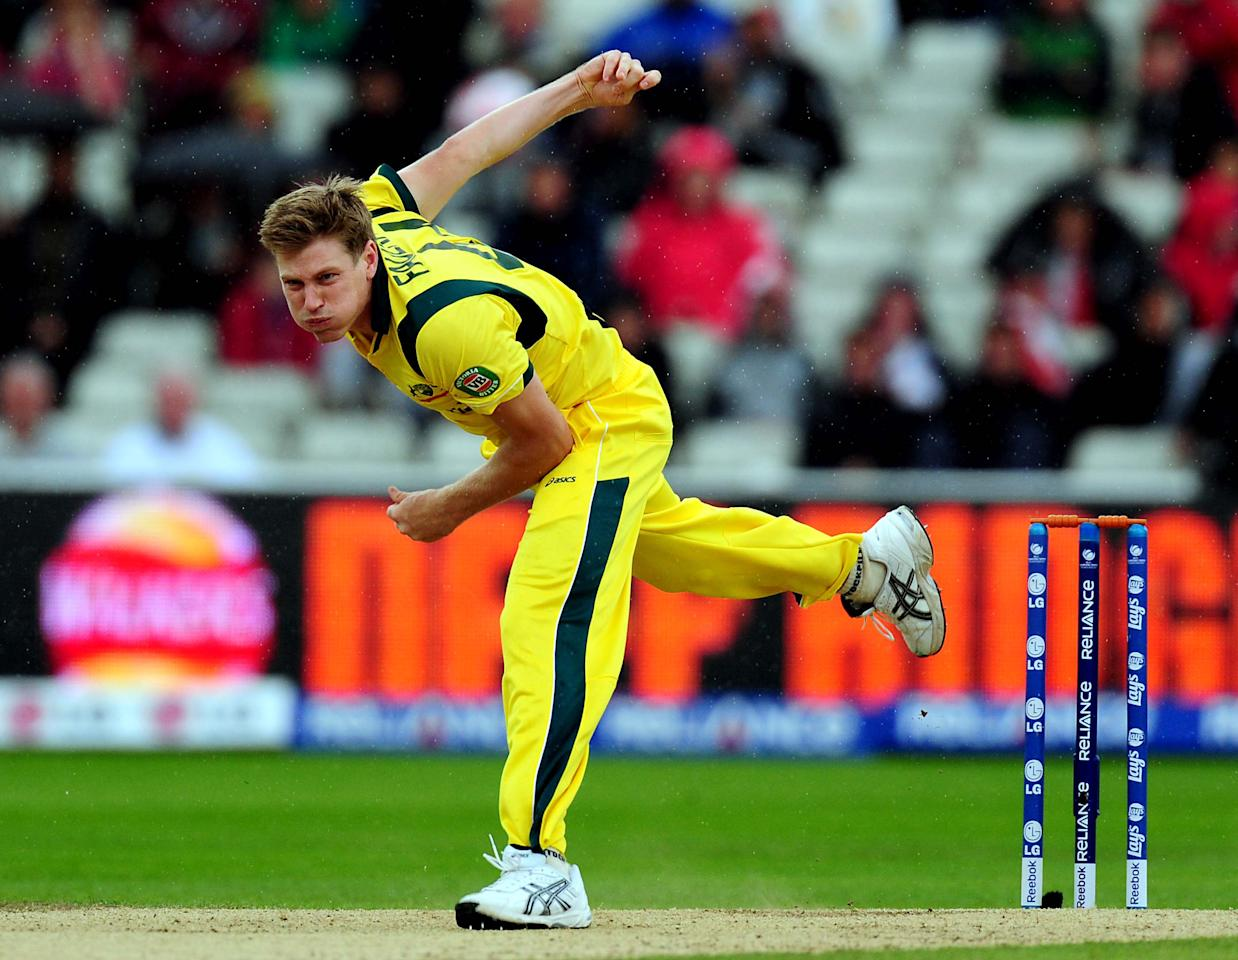 Australia's James Faulkner during the ICC Champions Trophy match at Edgbaston, Birmingham.